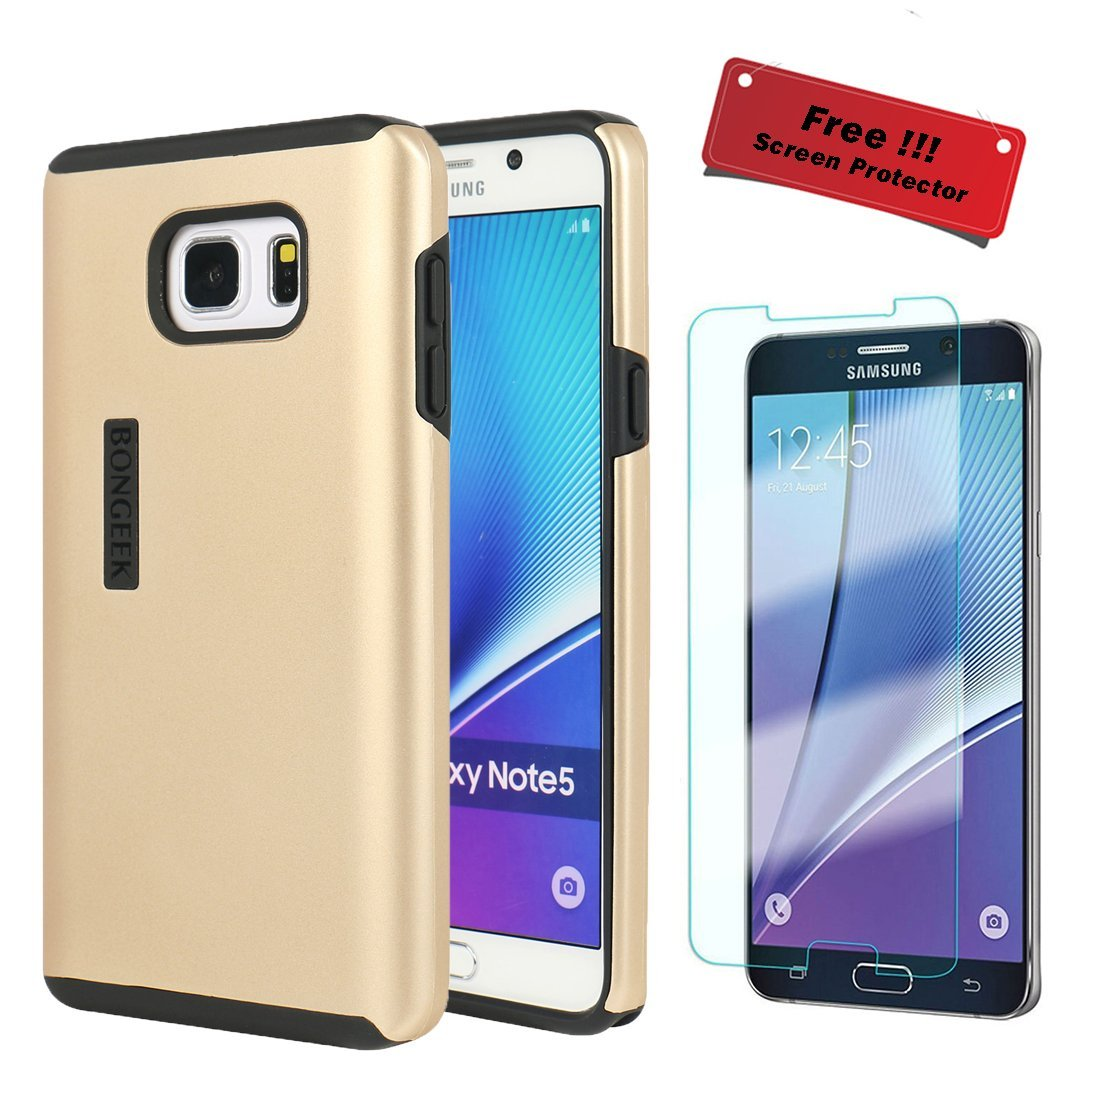 Samsung Galaxy Note 5 Case, FREE Tempered Glass Galaxy Note 5 Screen Protector WORTH $15 While Stocks Last, BONGEEK Dual Layer Hybrid Protective Case (Gold)